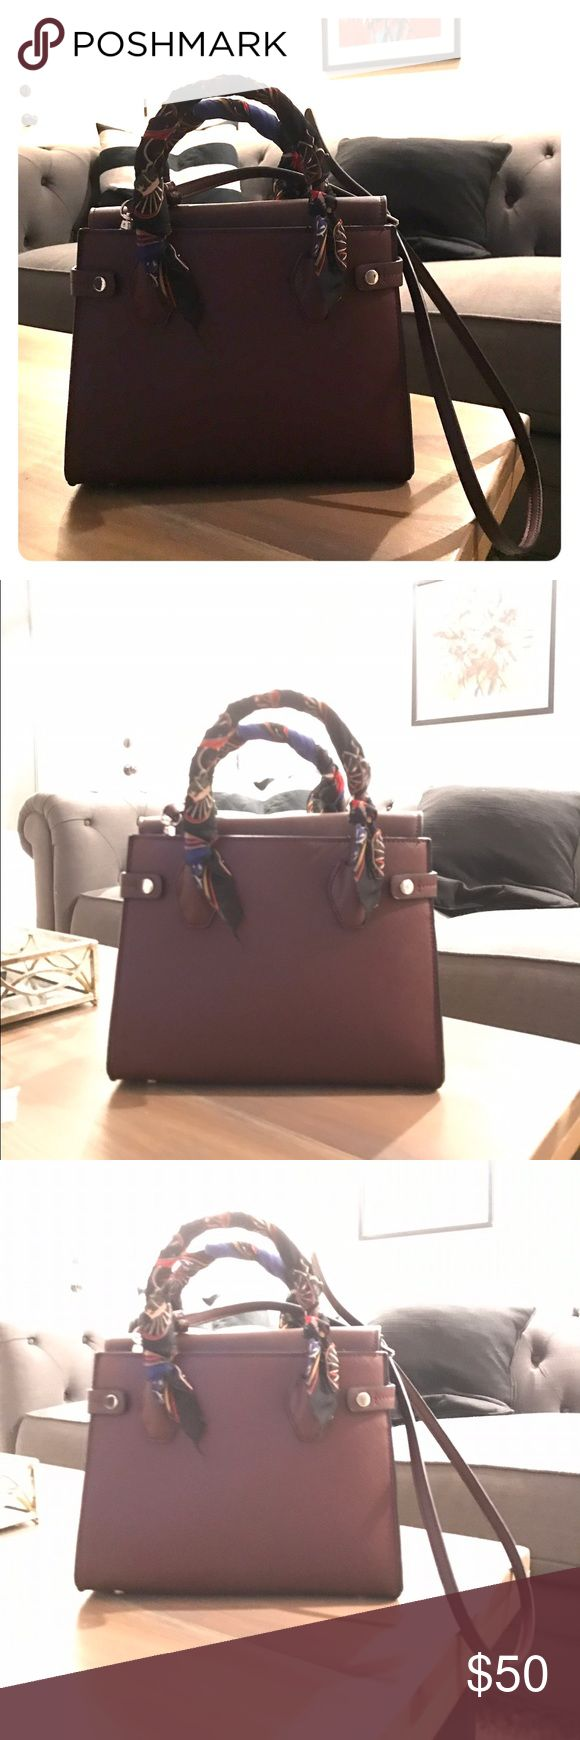 Zara handbag with tags Never used. Bought for a gift. Maroon Zara Bags Totes